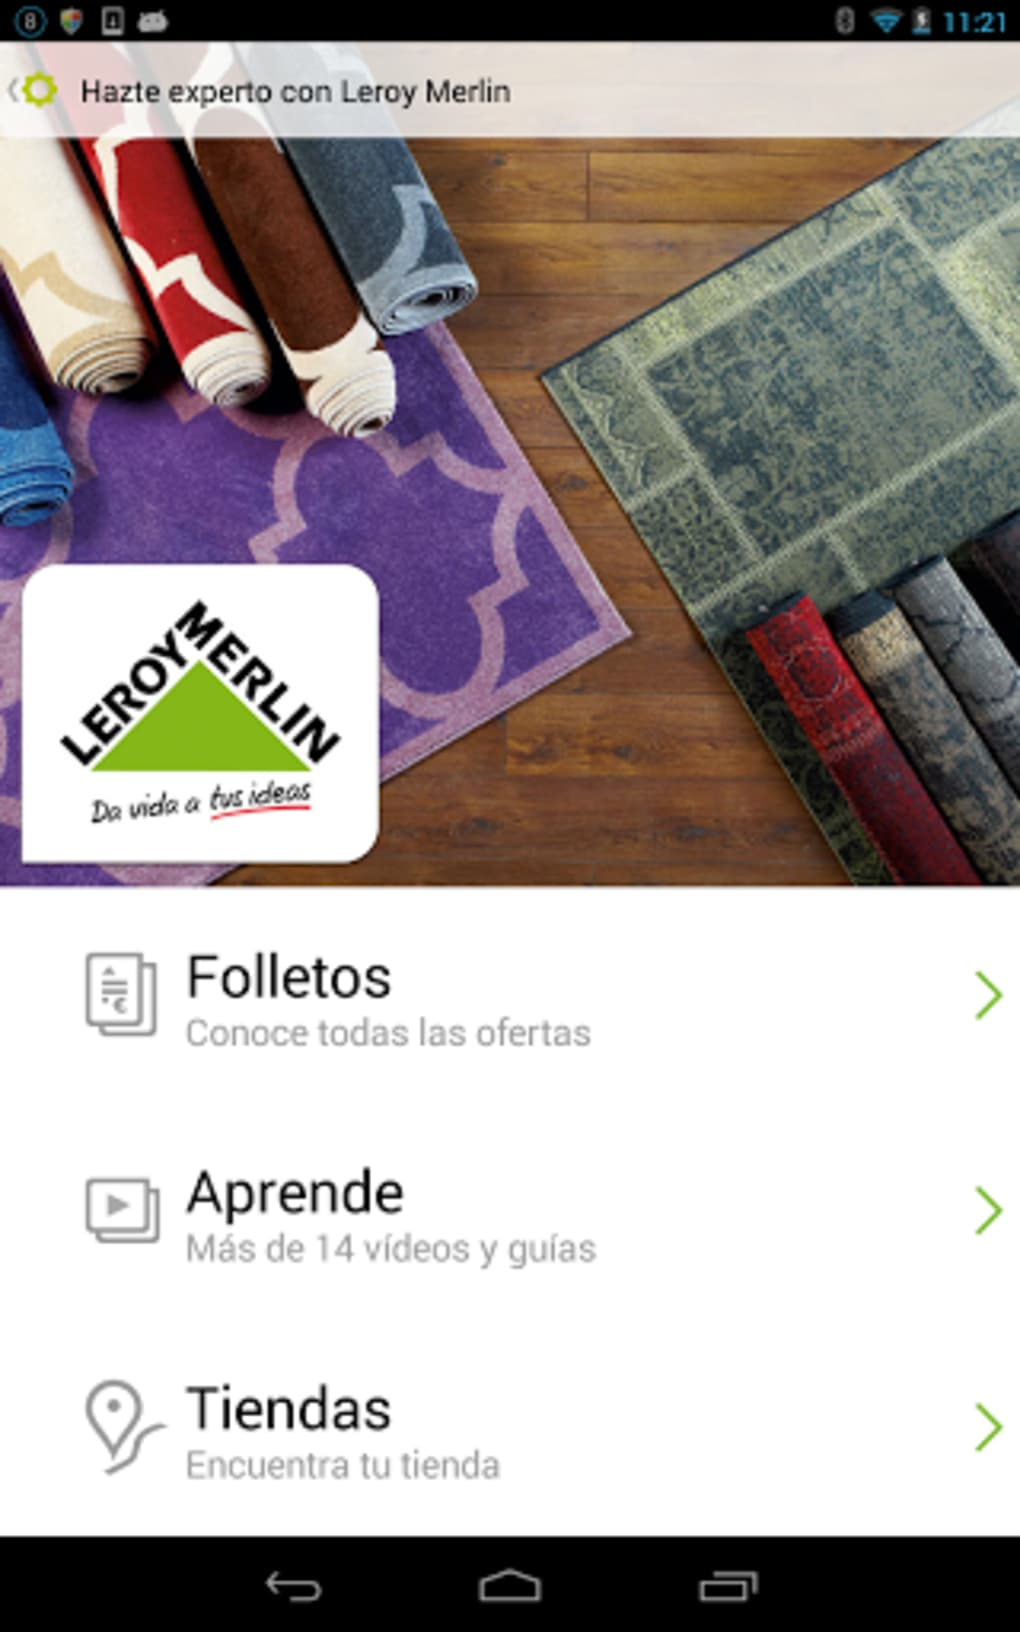 Folletos e ideas leroy merlin para android descargar for Leroy merlin sedie e tavoli